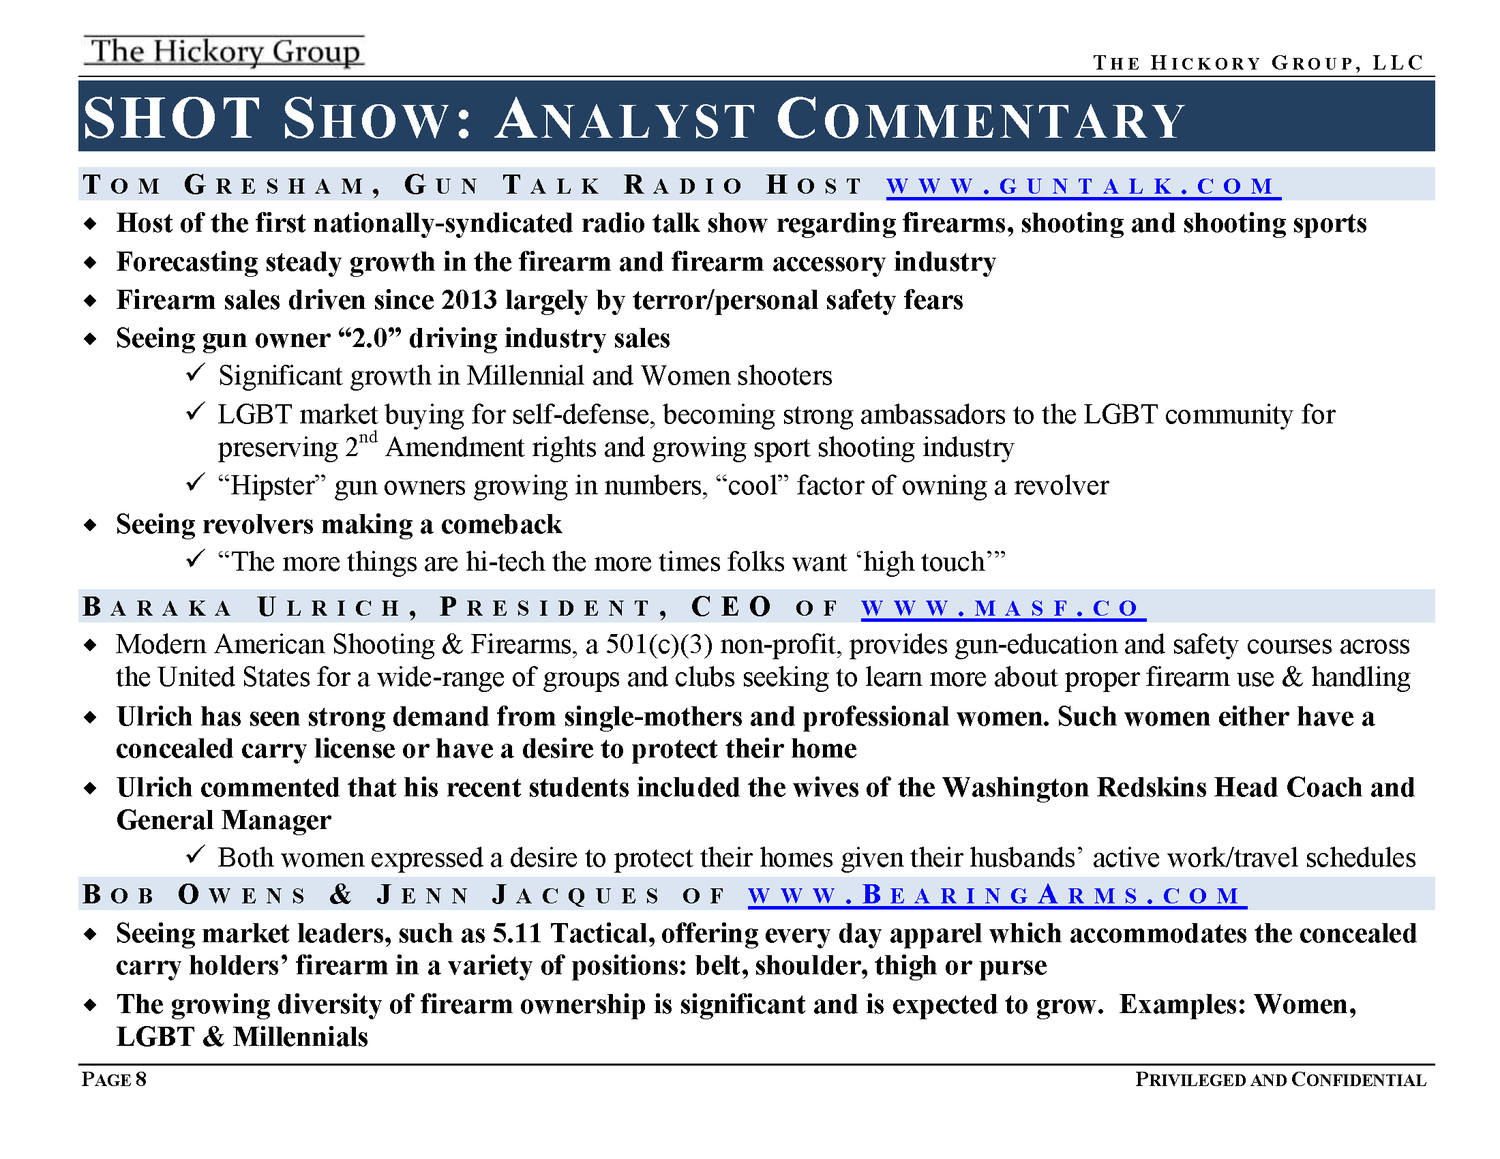 FLASH+REPORT+-+SHOT+SHOW+-+FINAL+(February+3+2017)+Privileged+and+Confidential_Page_8.png